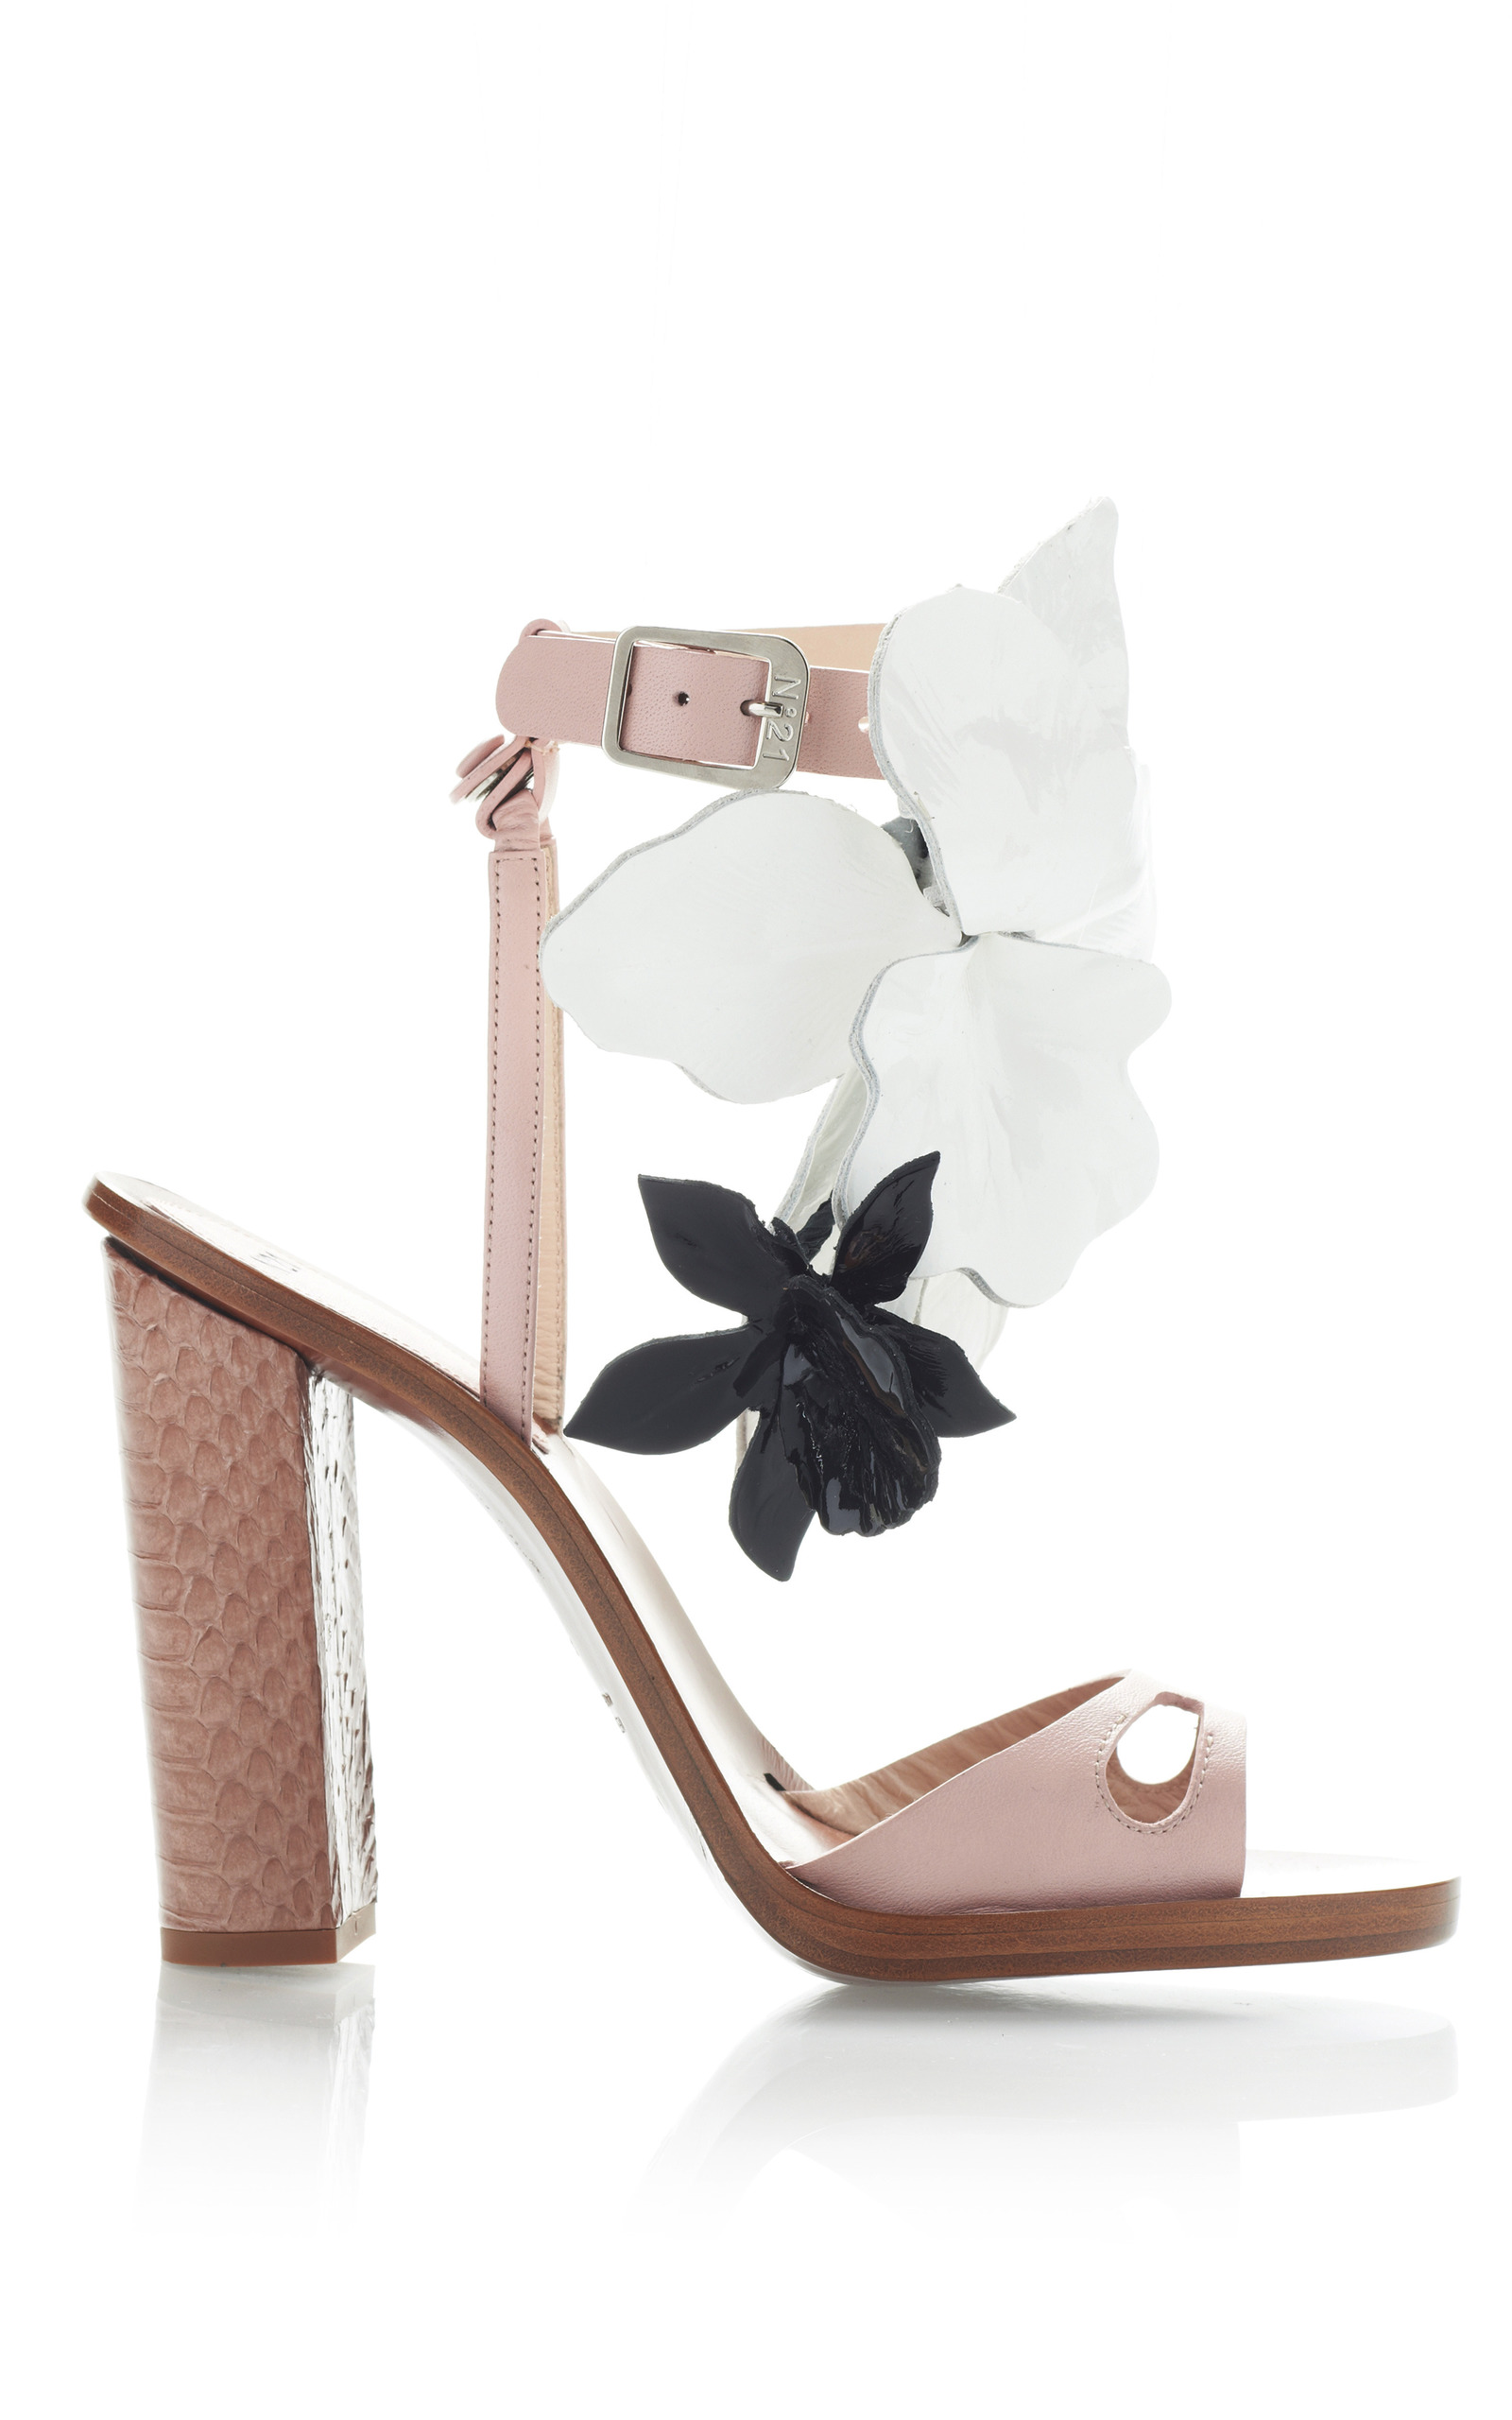 Blush Pink High Heel Sandals With Black And White Flowers By N21